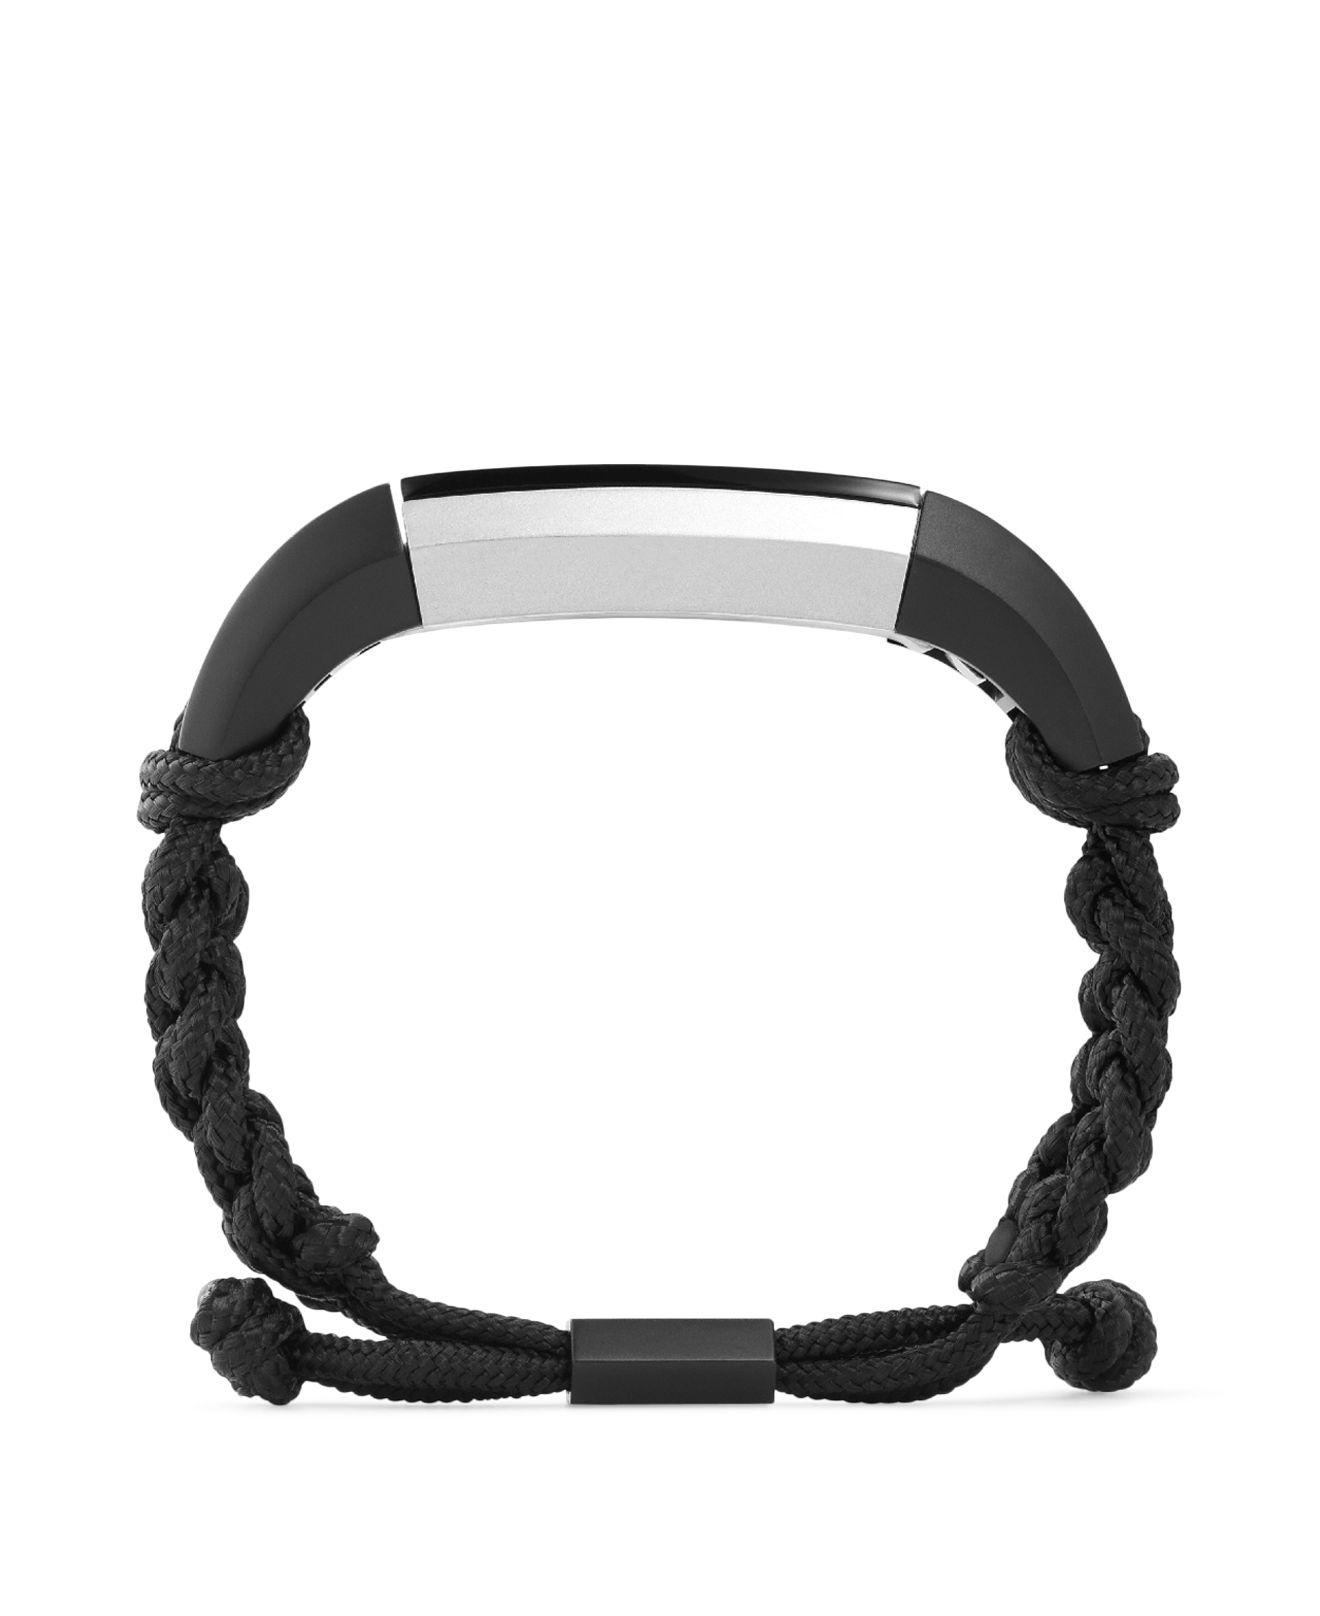 Lyst Public School Paracord Accessory Band For Alta In Black Men Fitbit Metal Bracelet Gallery